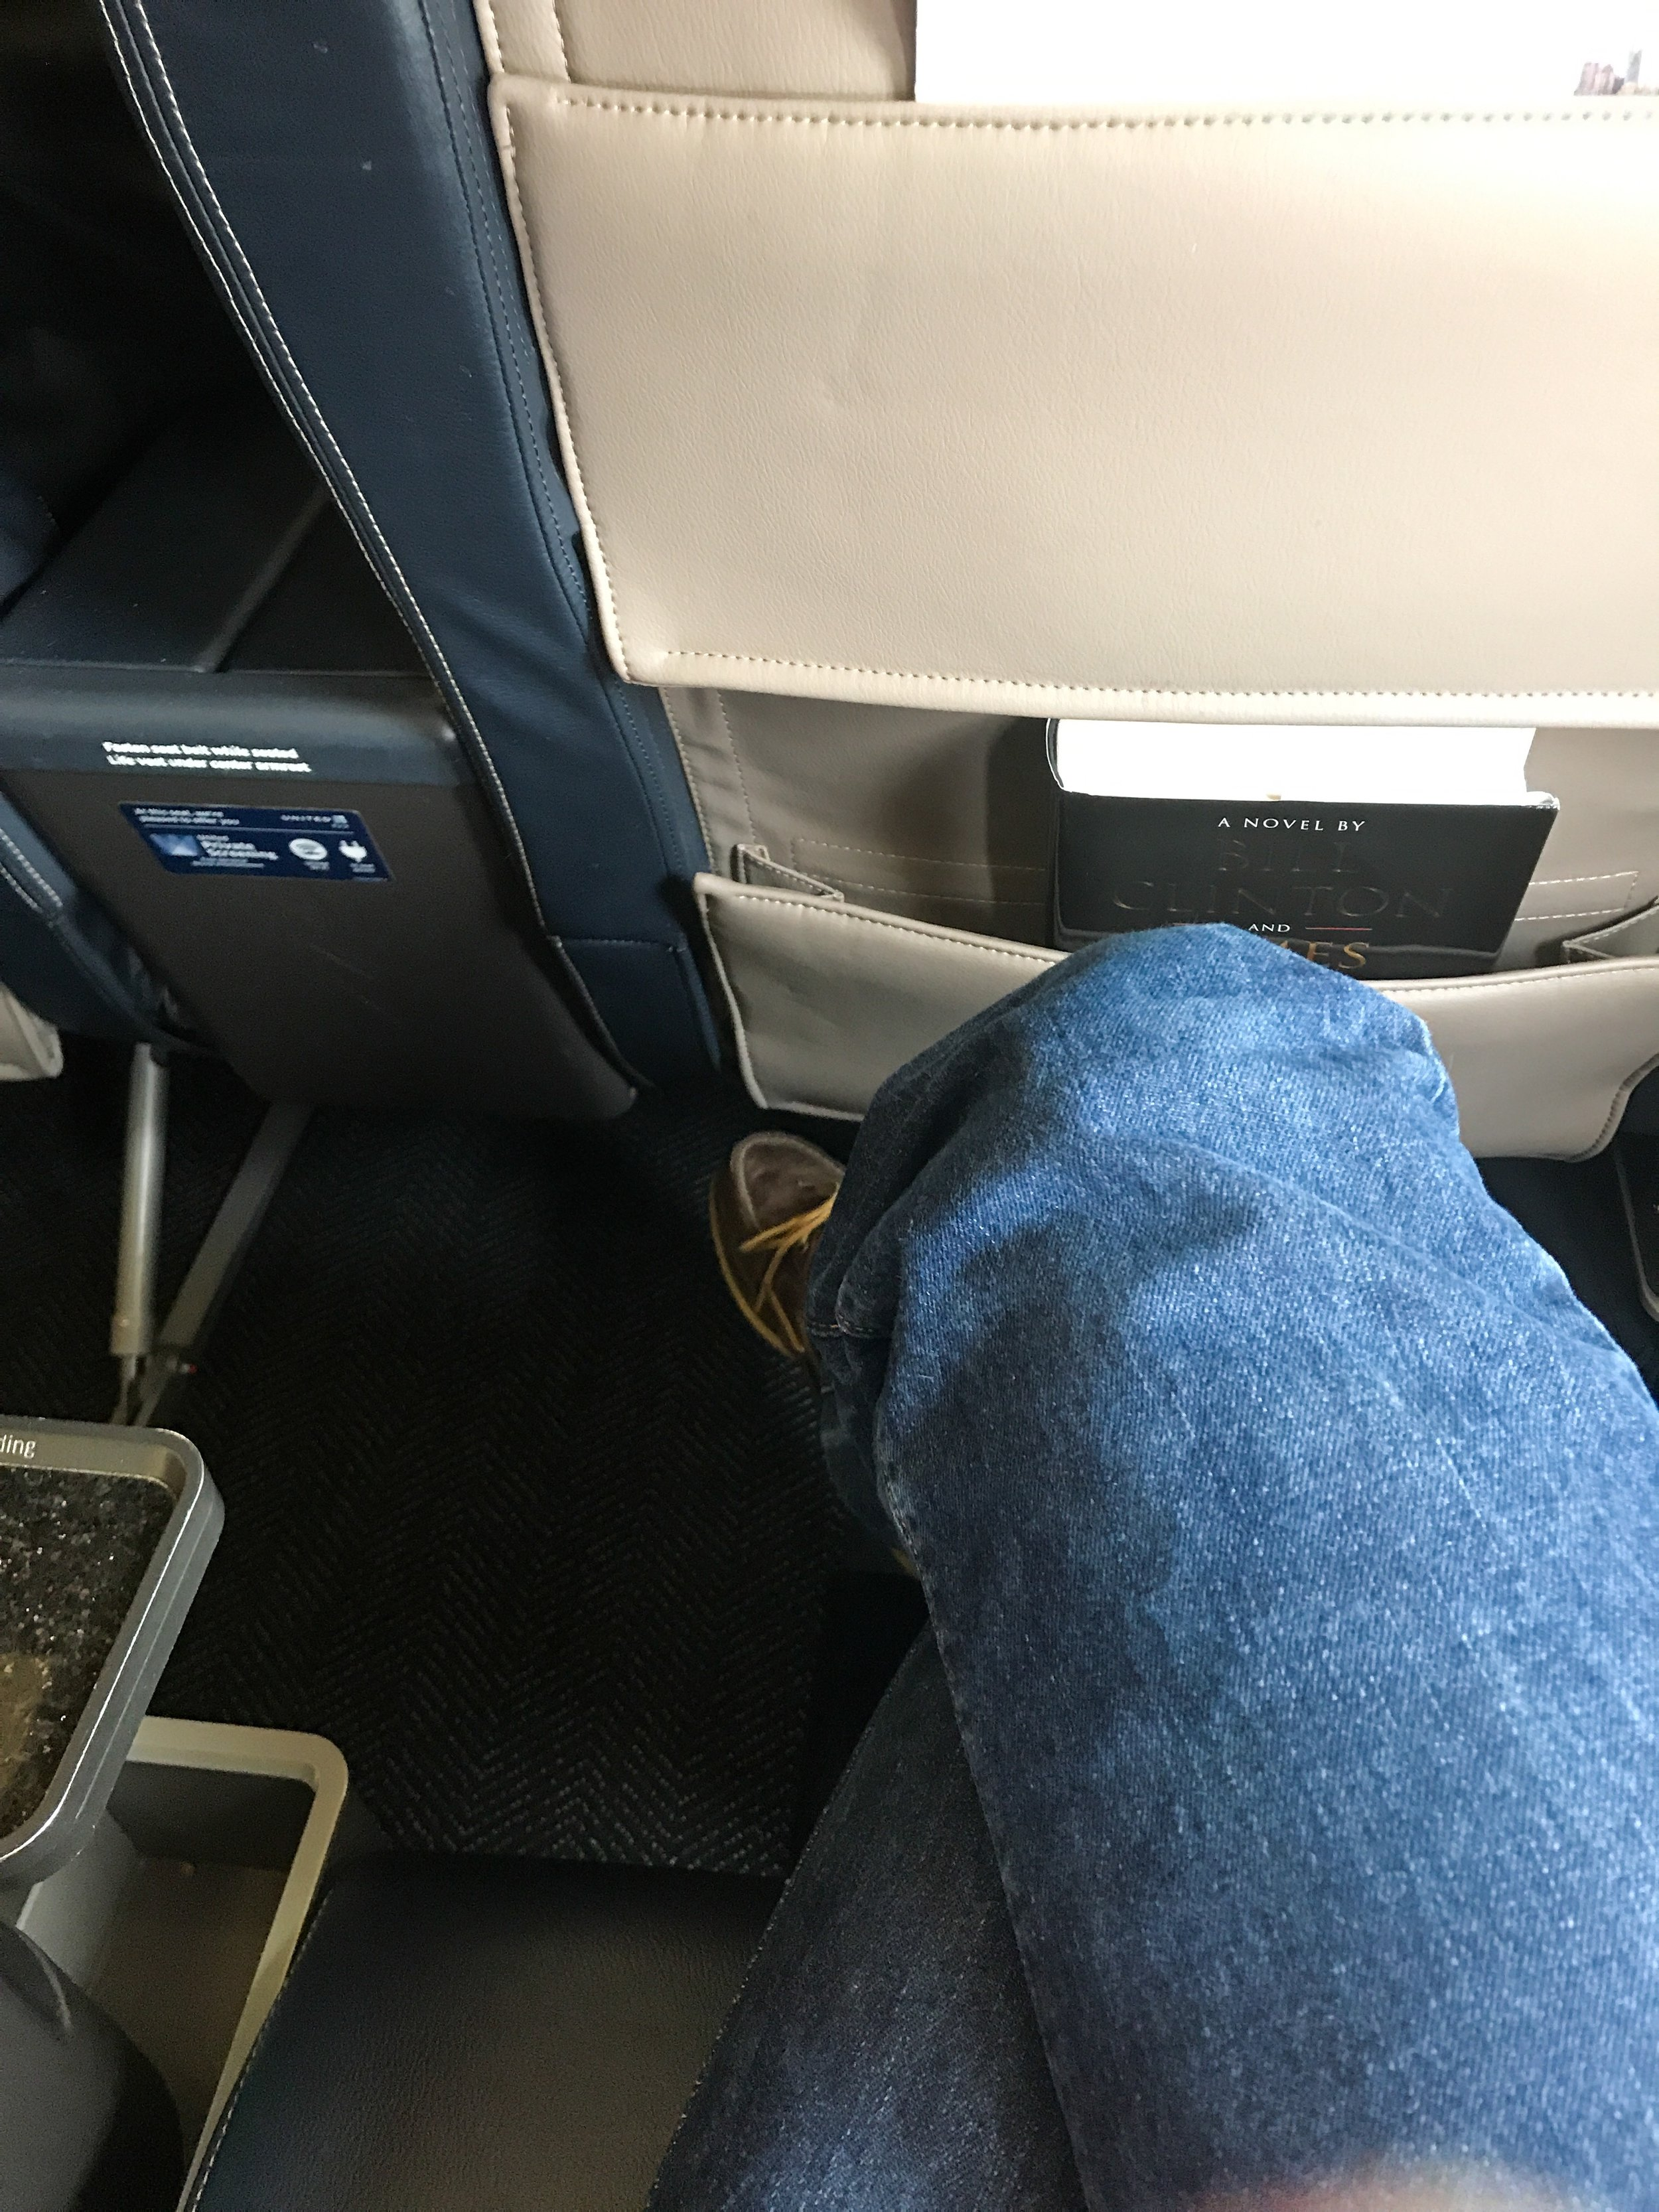 People complain that seat pitch even in domestic First Class has decreased over the years, but it still offers plenty of legroom.